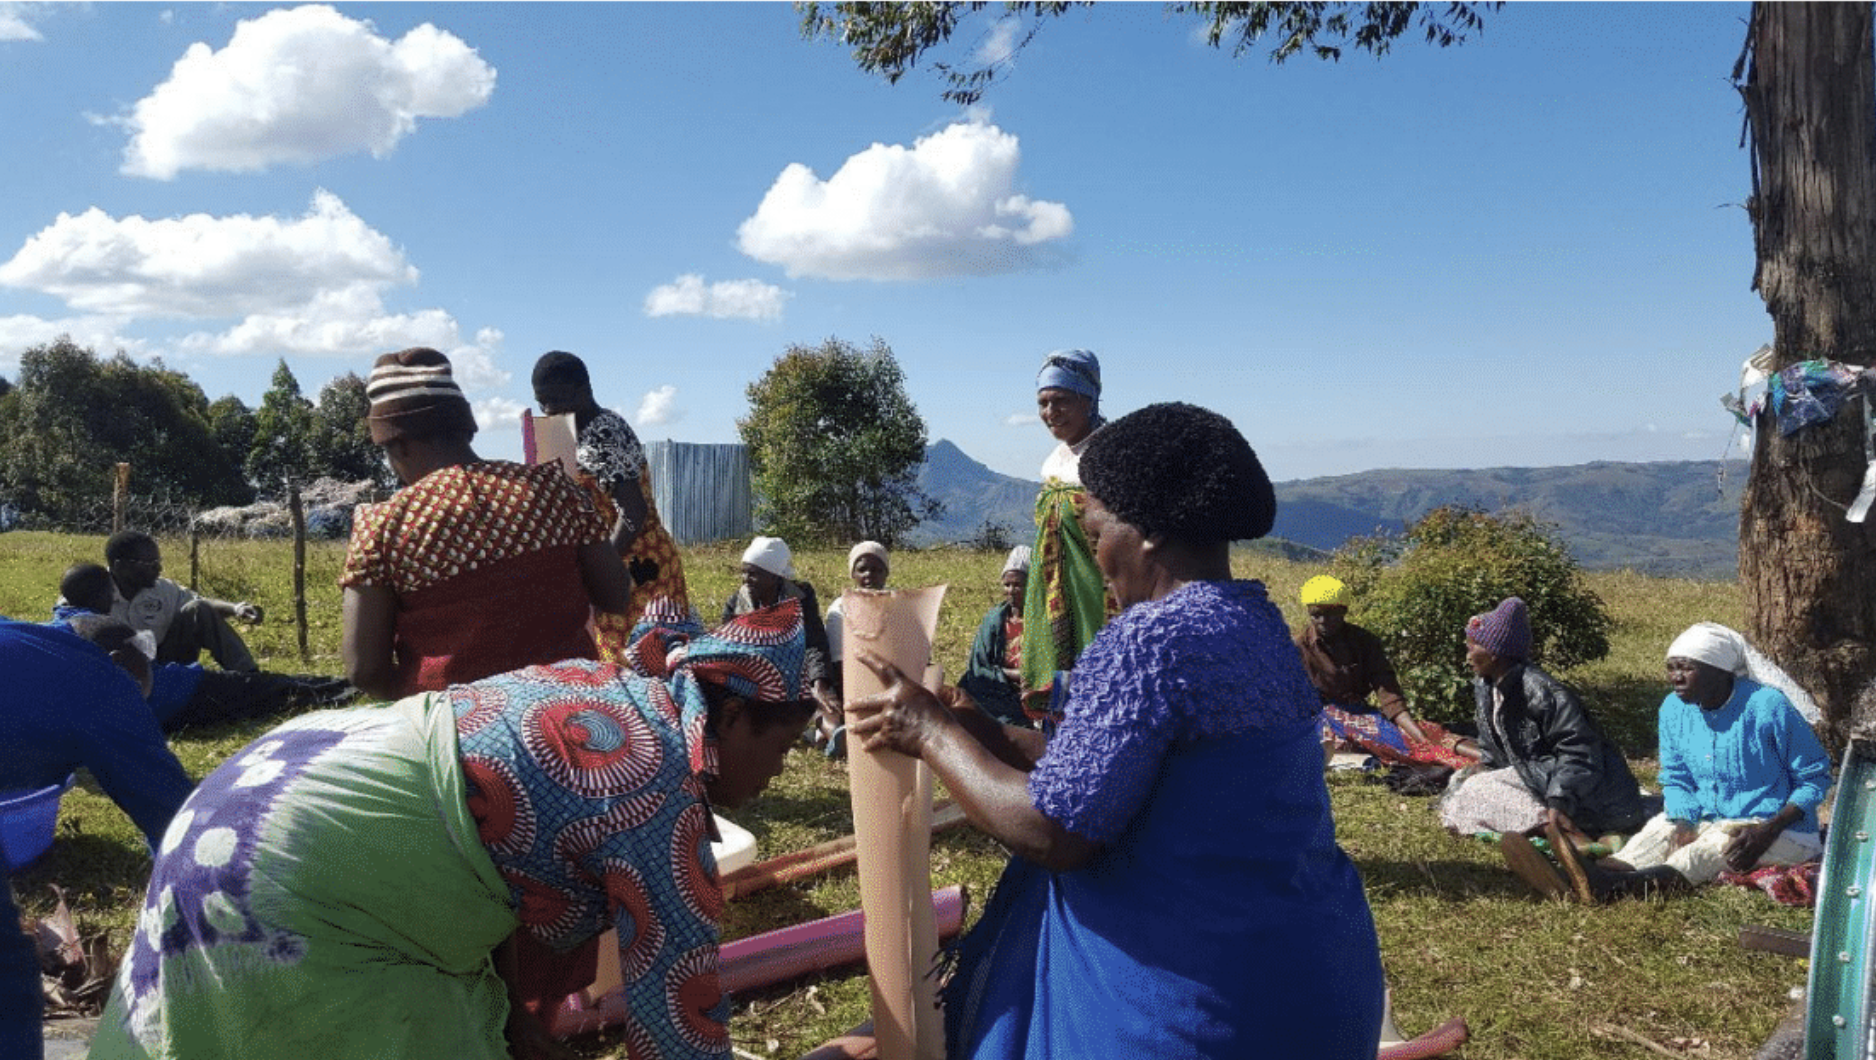 SHE Global Technical Director Leah Putman worked with farmers in Zimbabwe to assess feasibility of natural fiber pads outside of Rwanda.